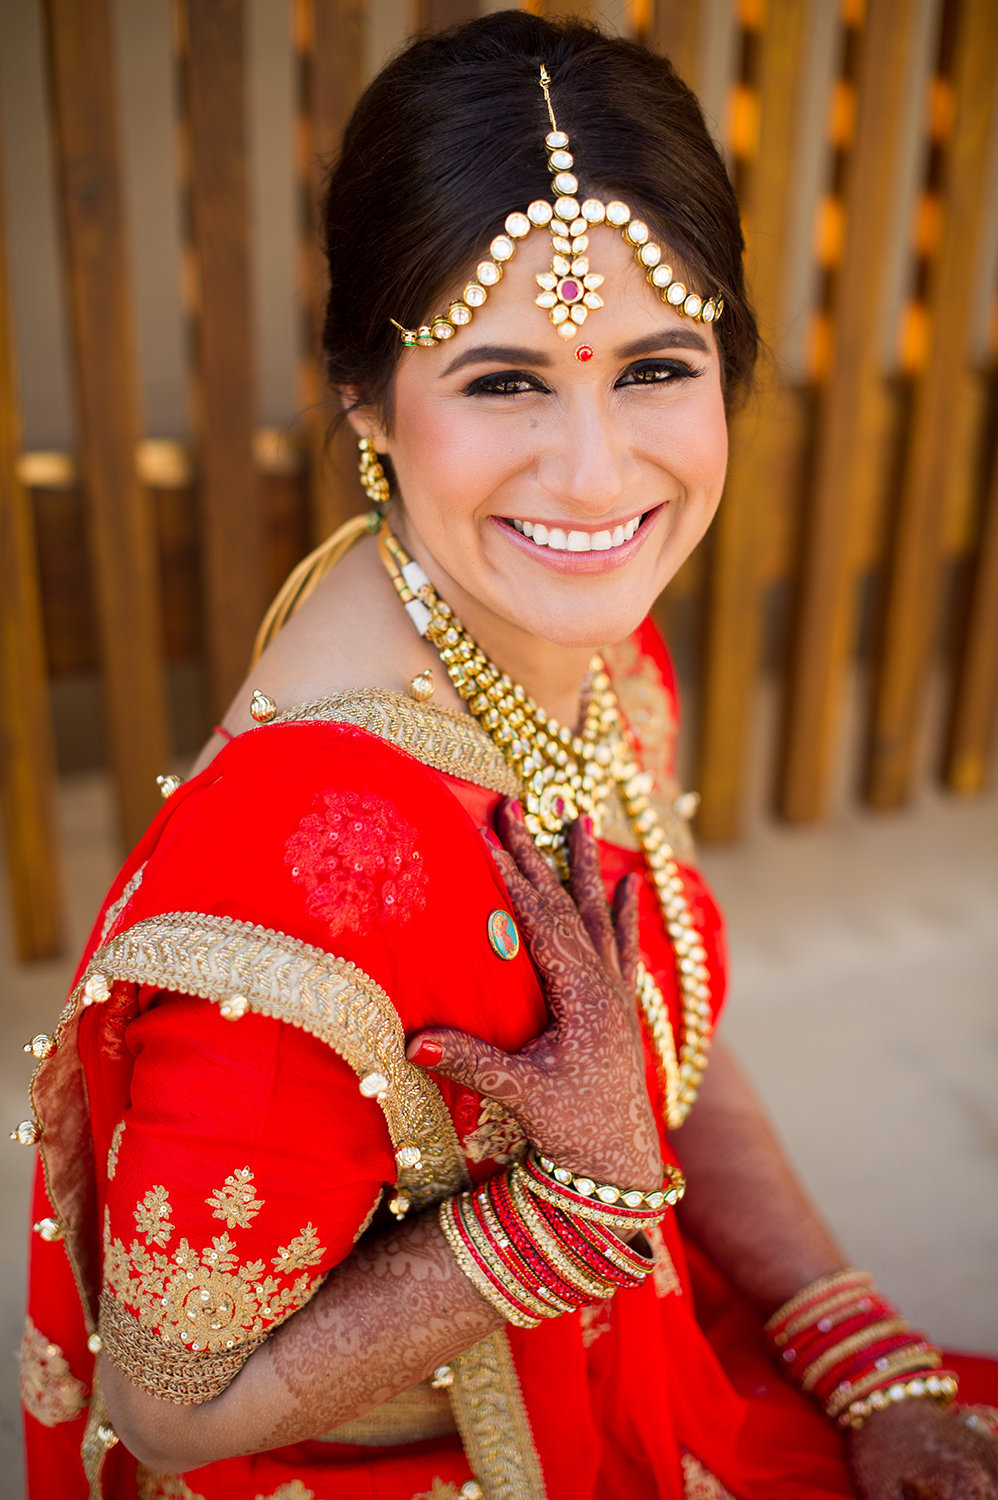 Beautiful Hindu Bride with Henna and Indian Jewelry